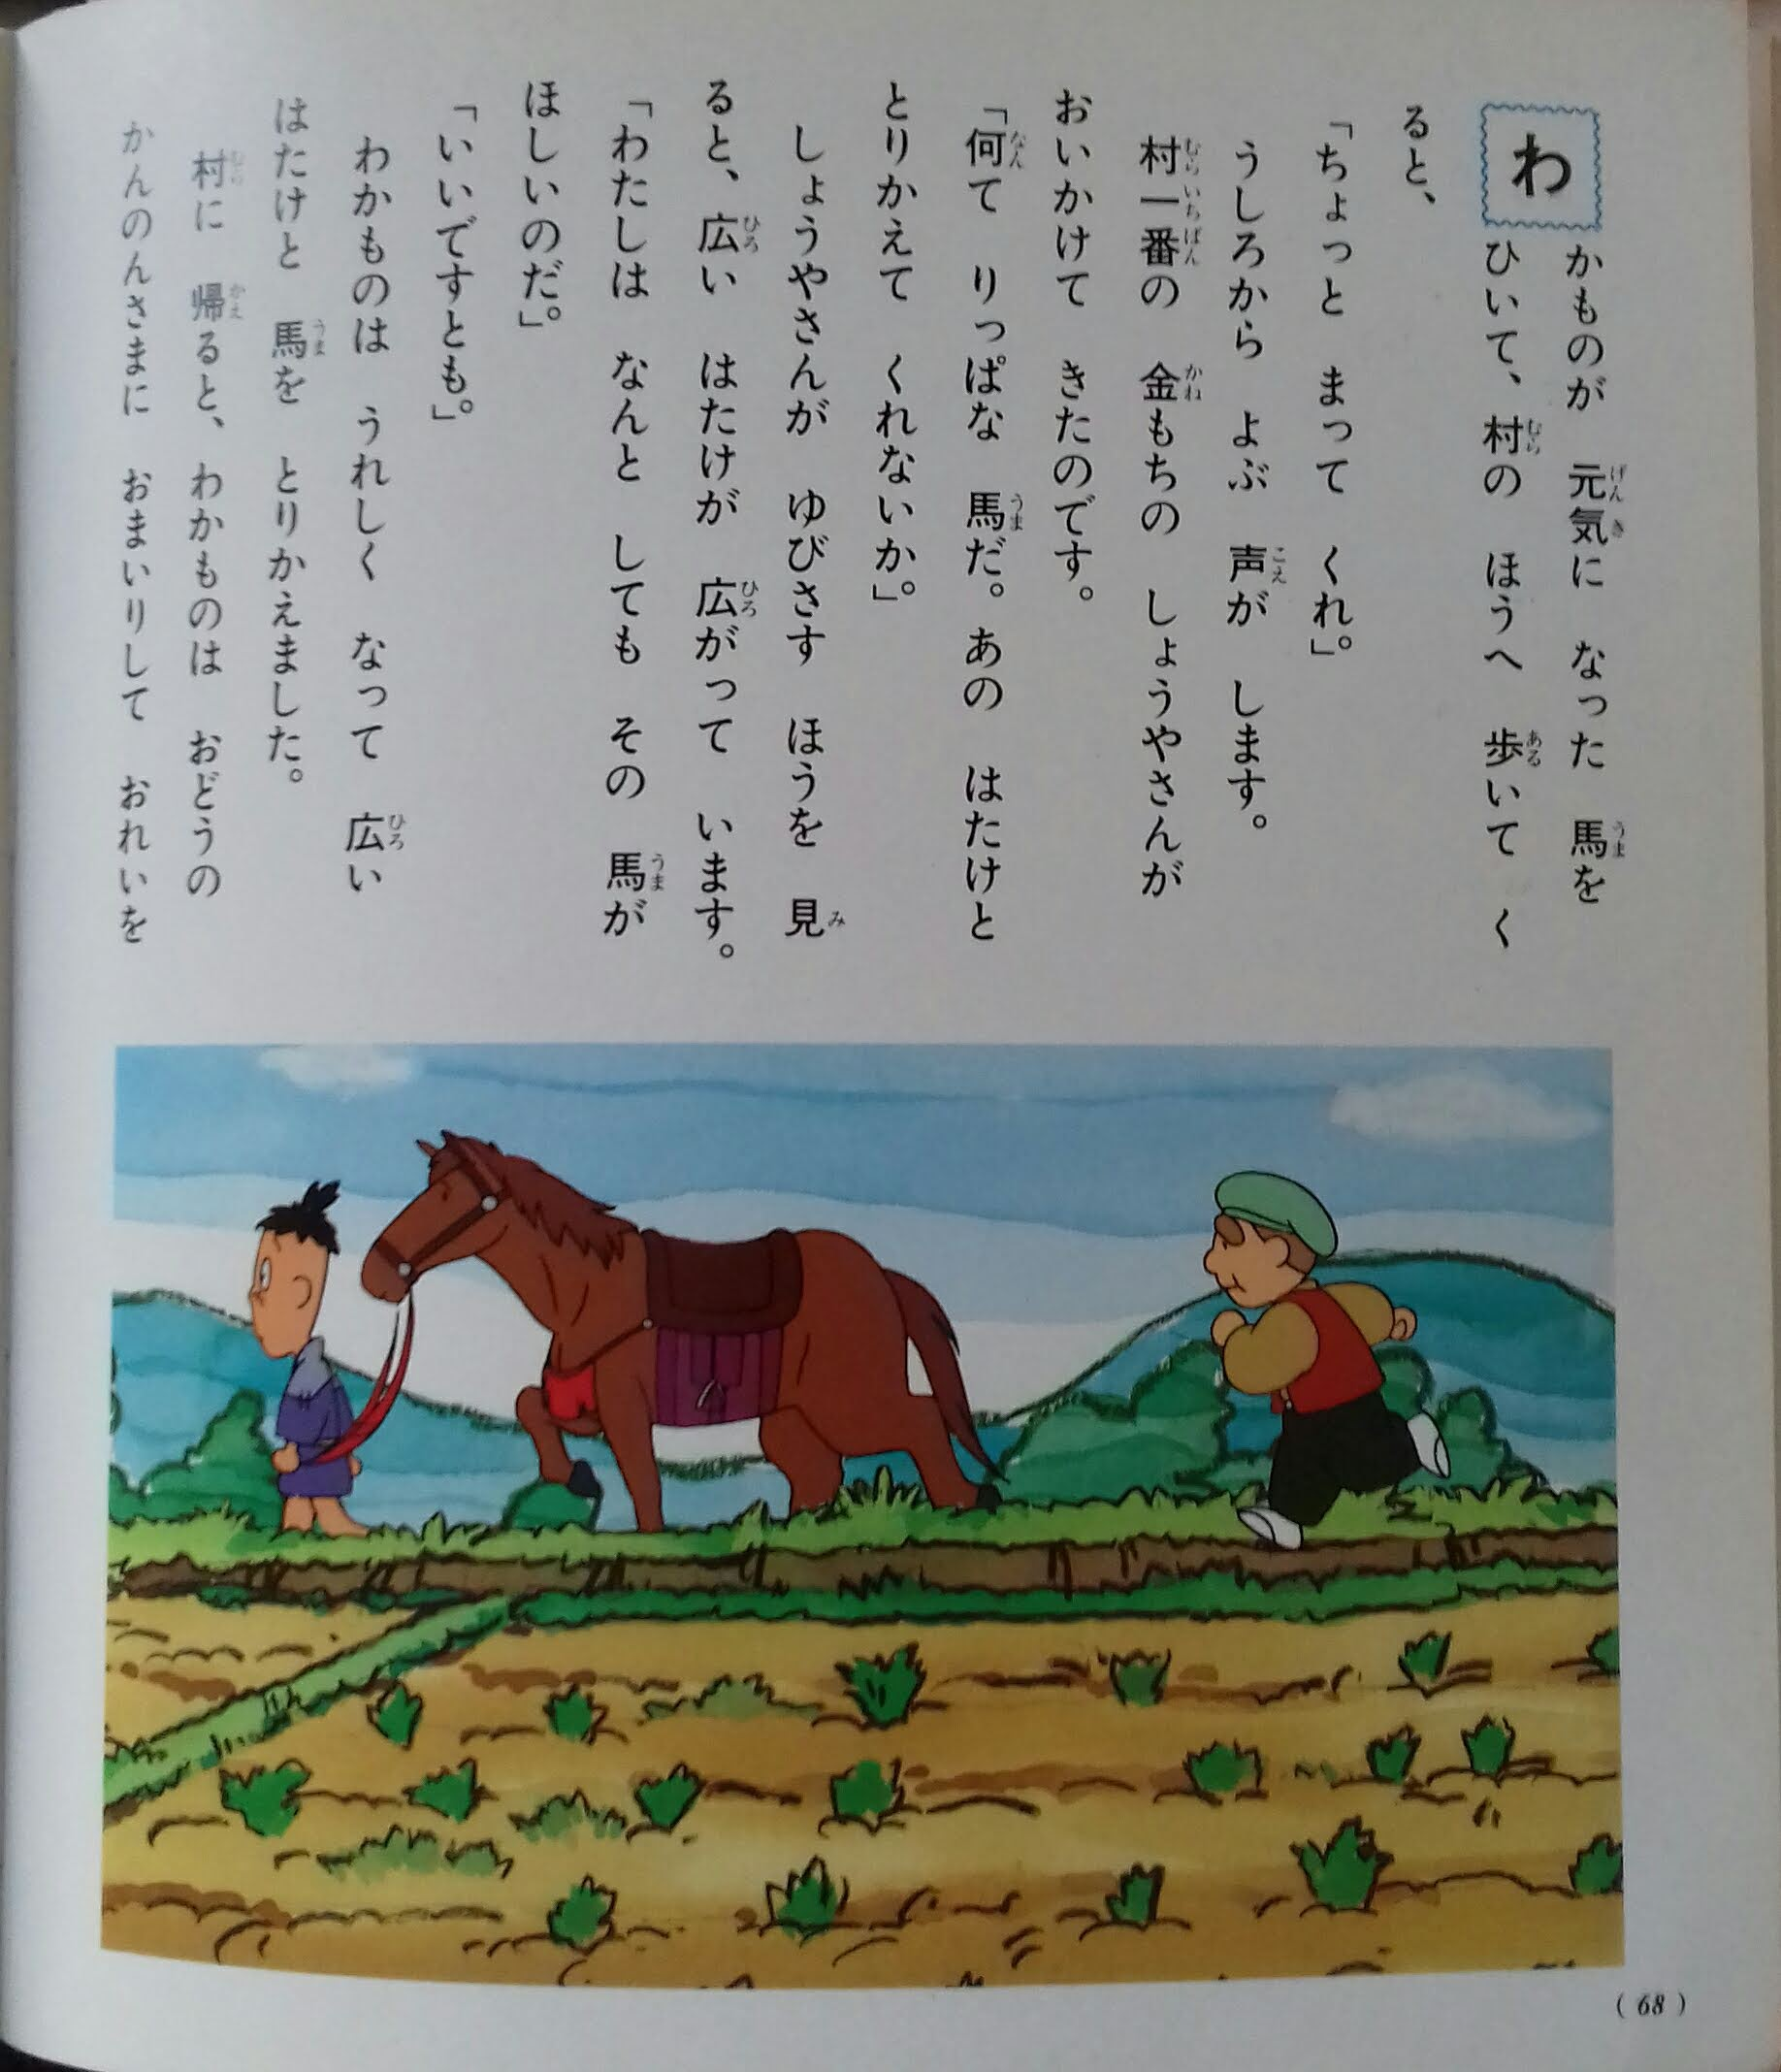 A rich man is chasing a young man who is pulling a horse